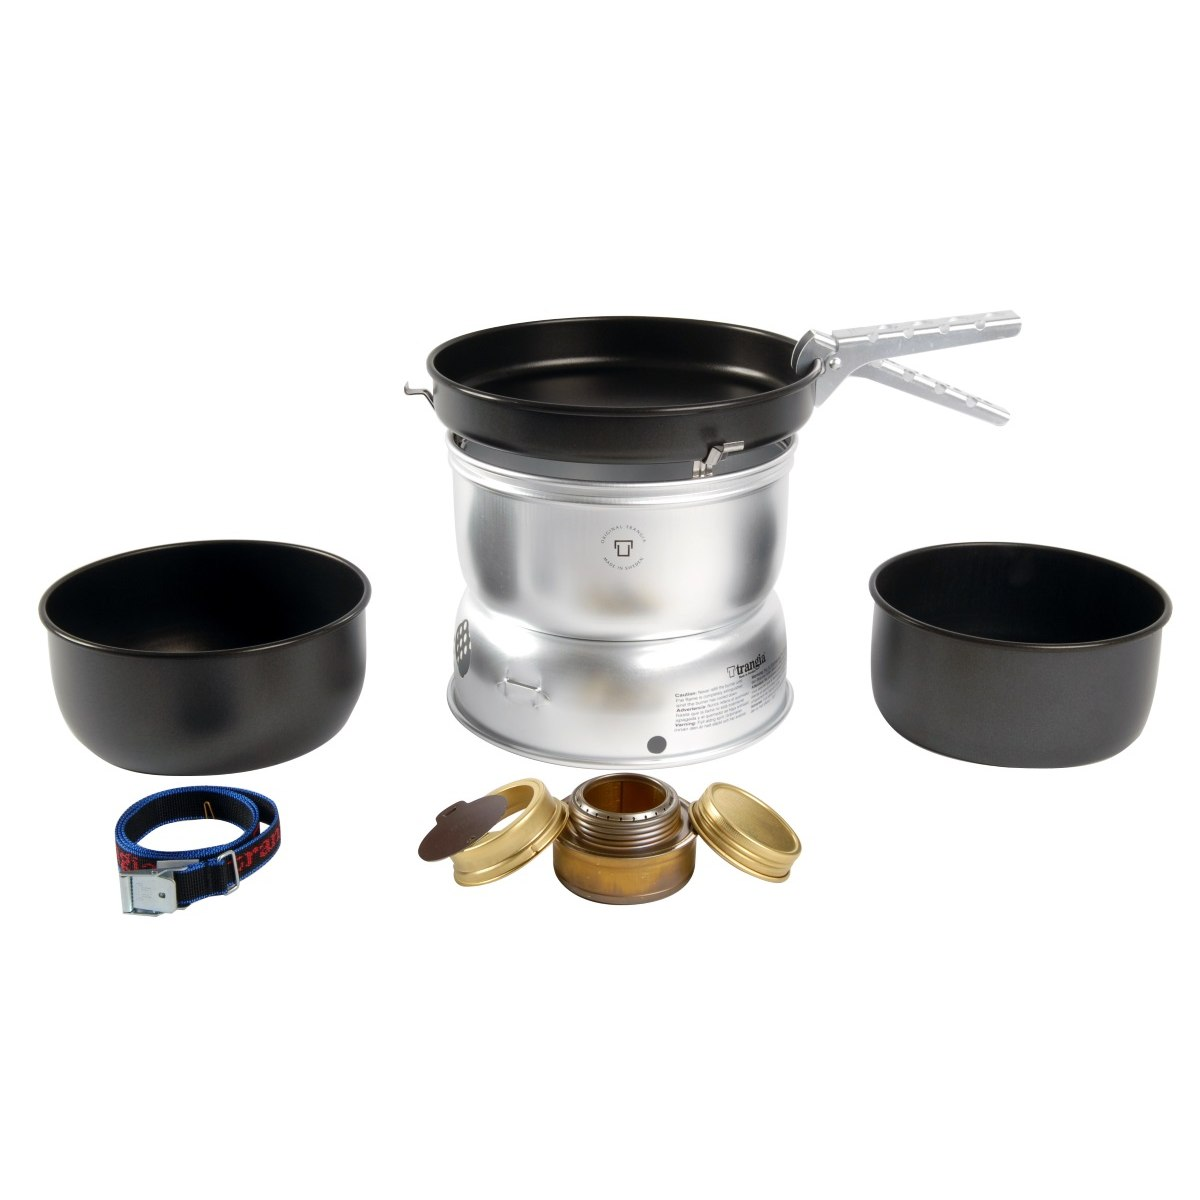 Trangia Storm Cooker 25-5 UL - Stove System with Non-Stick Pans